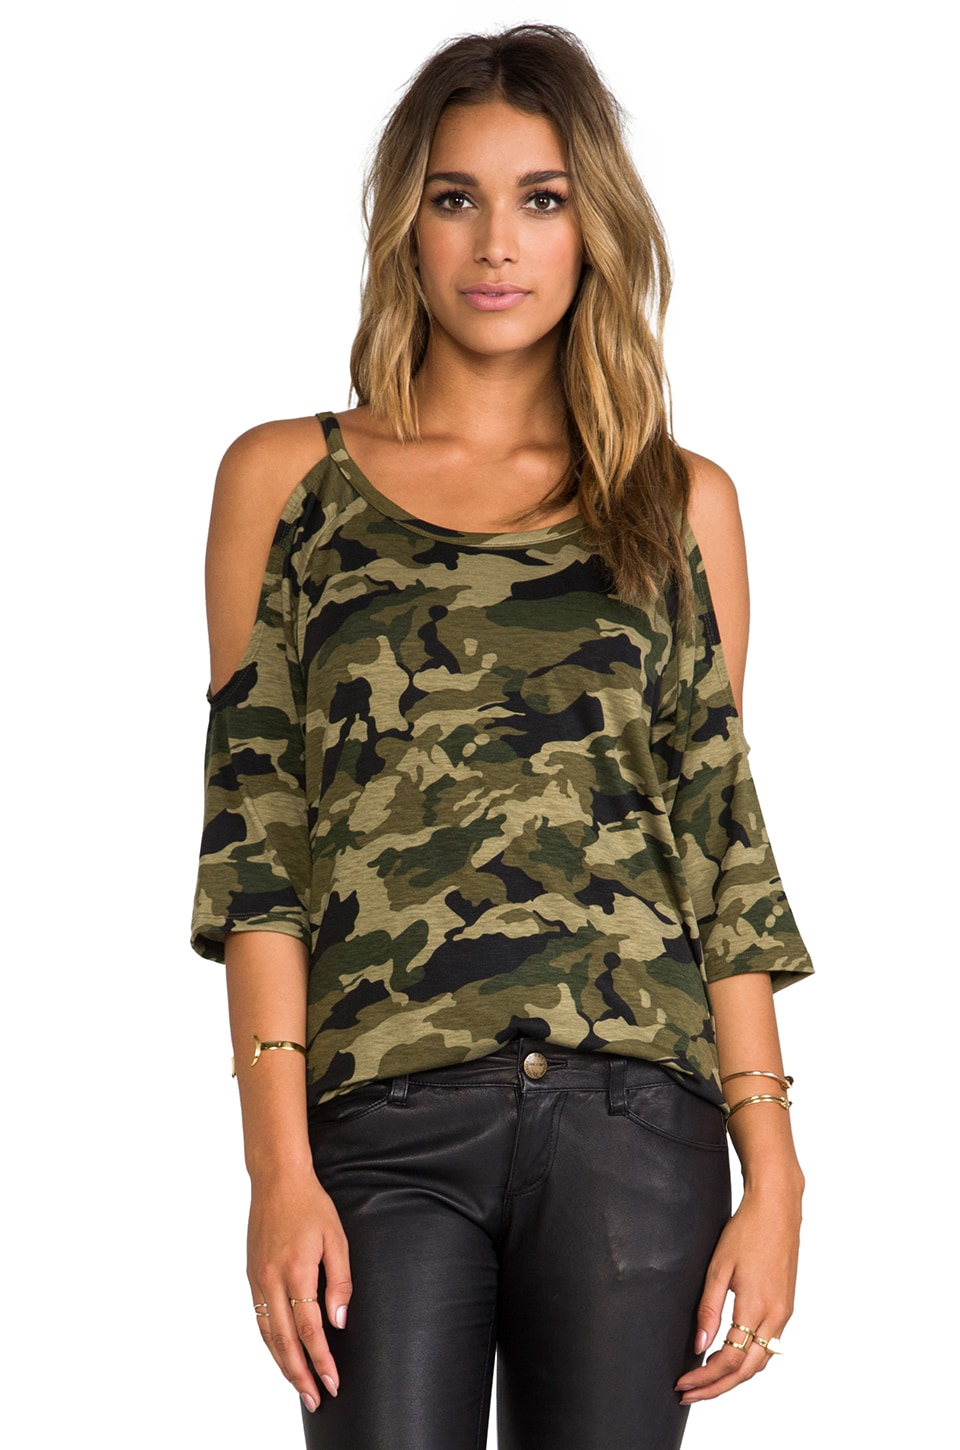 Lovers + Friends for REVOLVE Lizzie Top in Camo